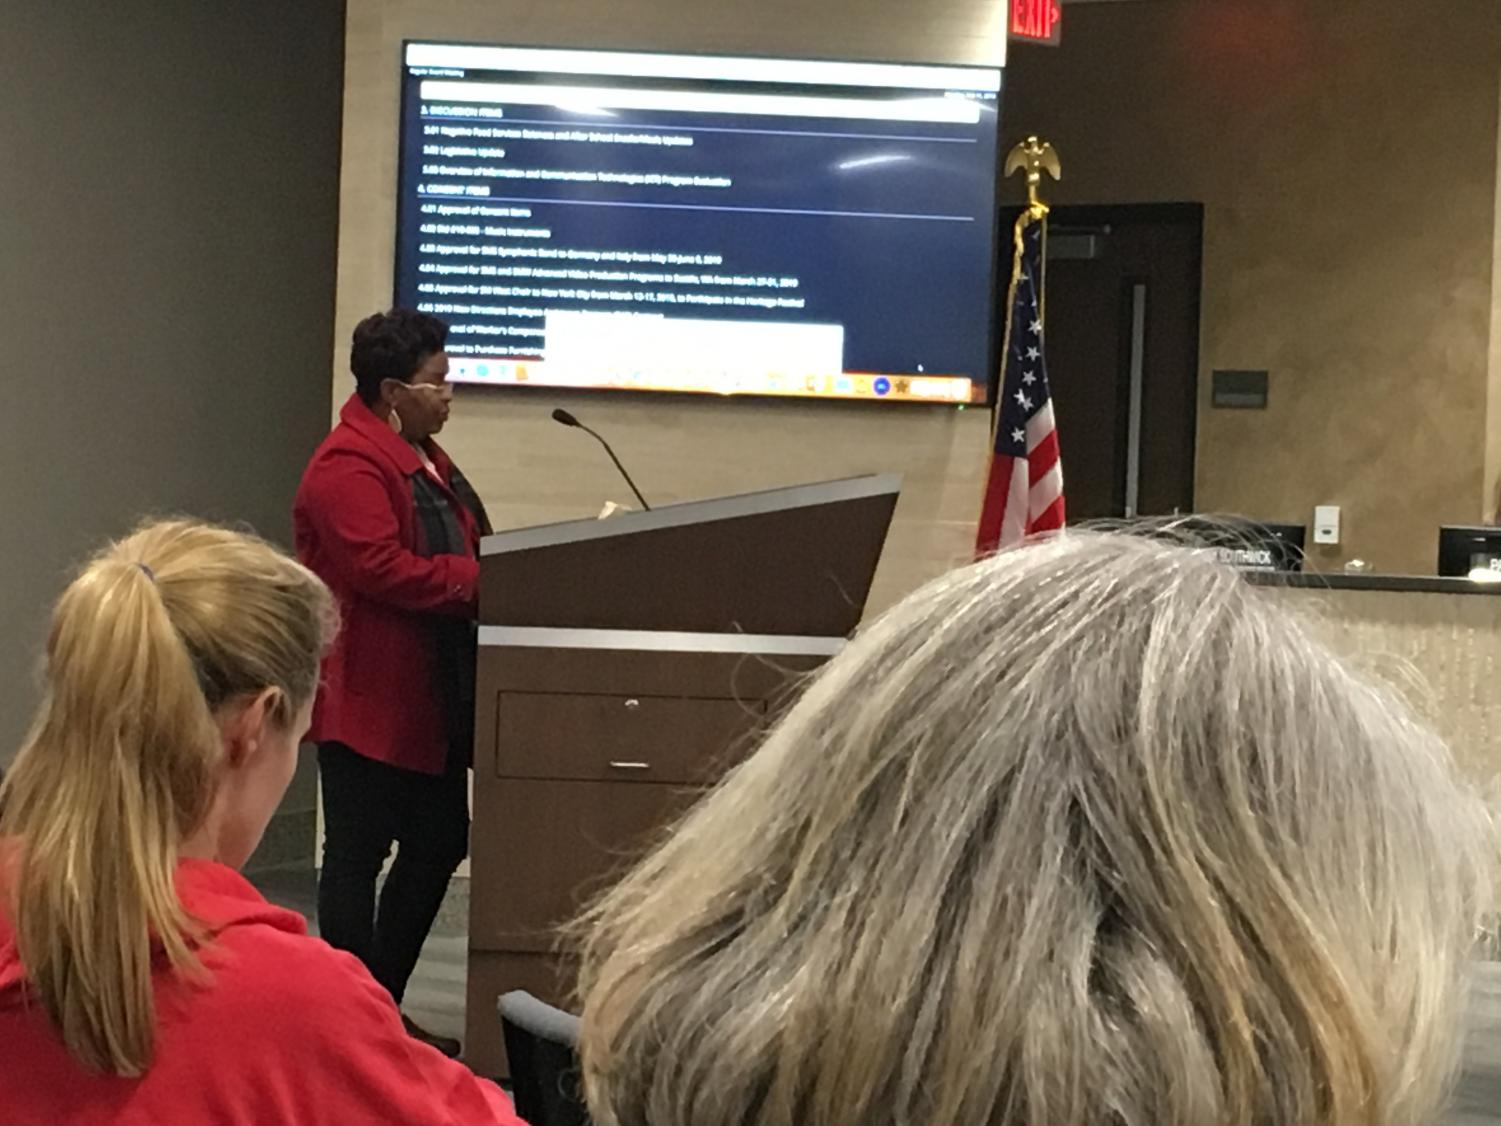 Anisha Jackson speaks during the public comments section of the board of education meeting Feb. 11.